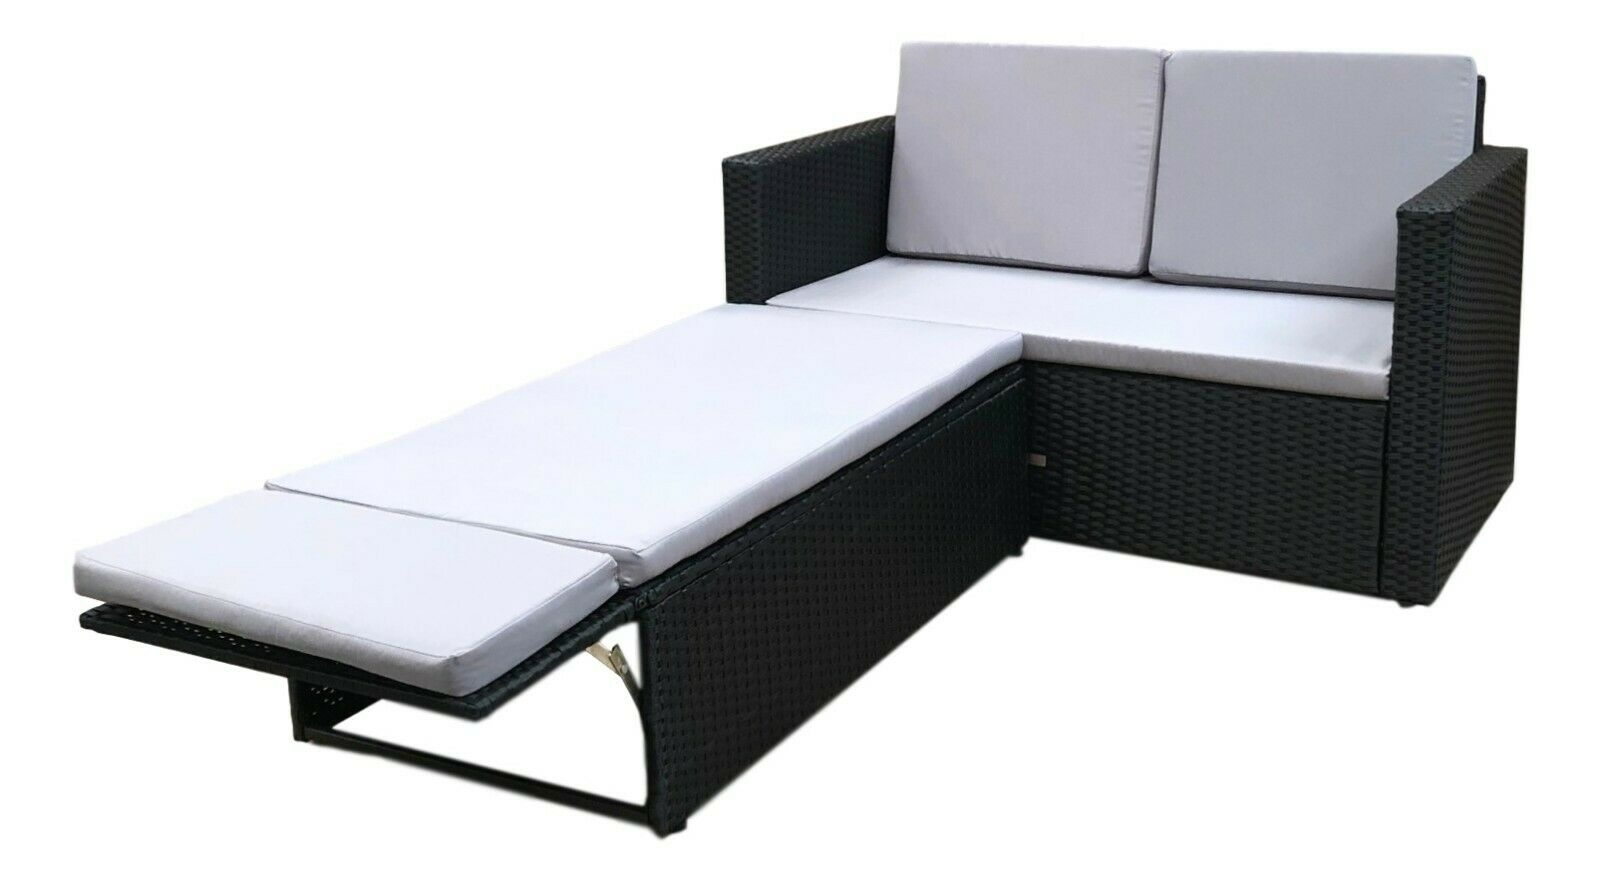 Garden Furniture - Rattan Outdoor Garden Sofa Furniture Love Bed Patio Sun bed 2 seater Black New